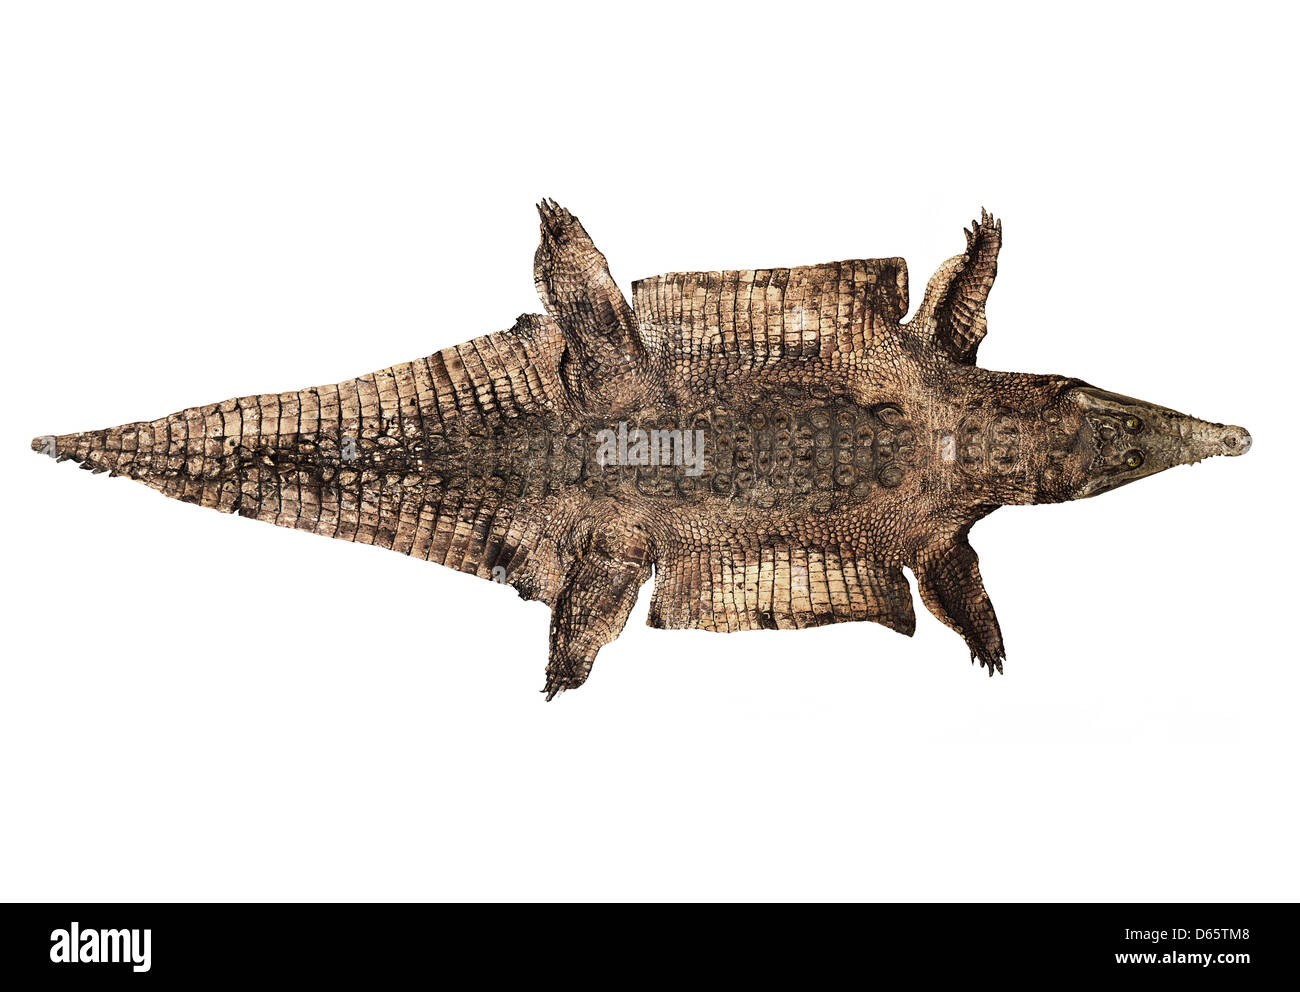 Old And Worn Alligator Skin - Stock Image